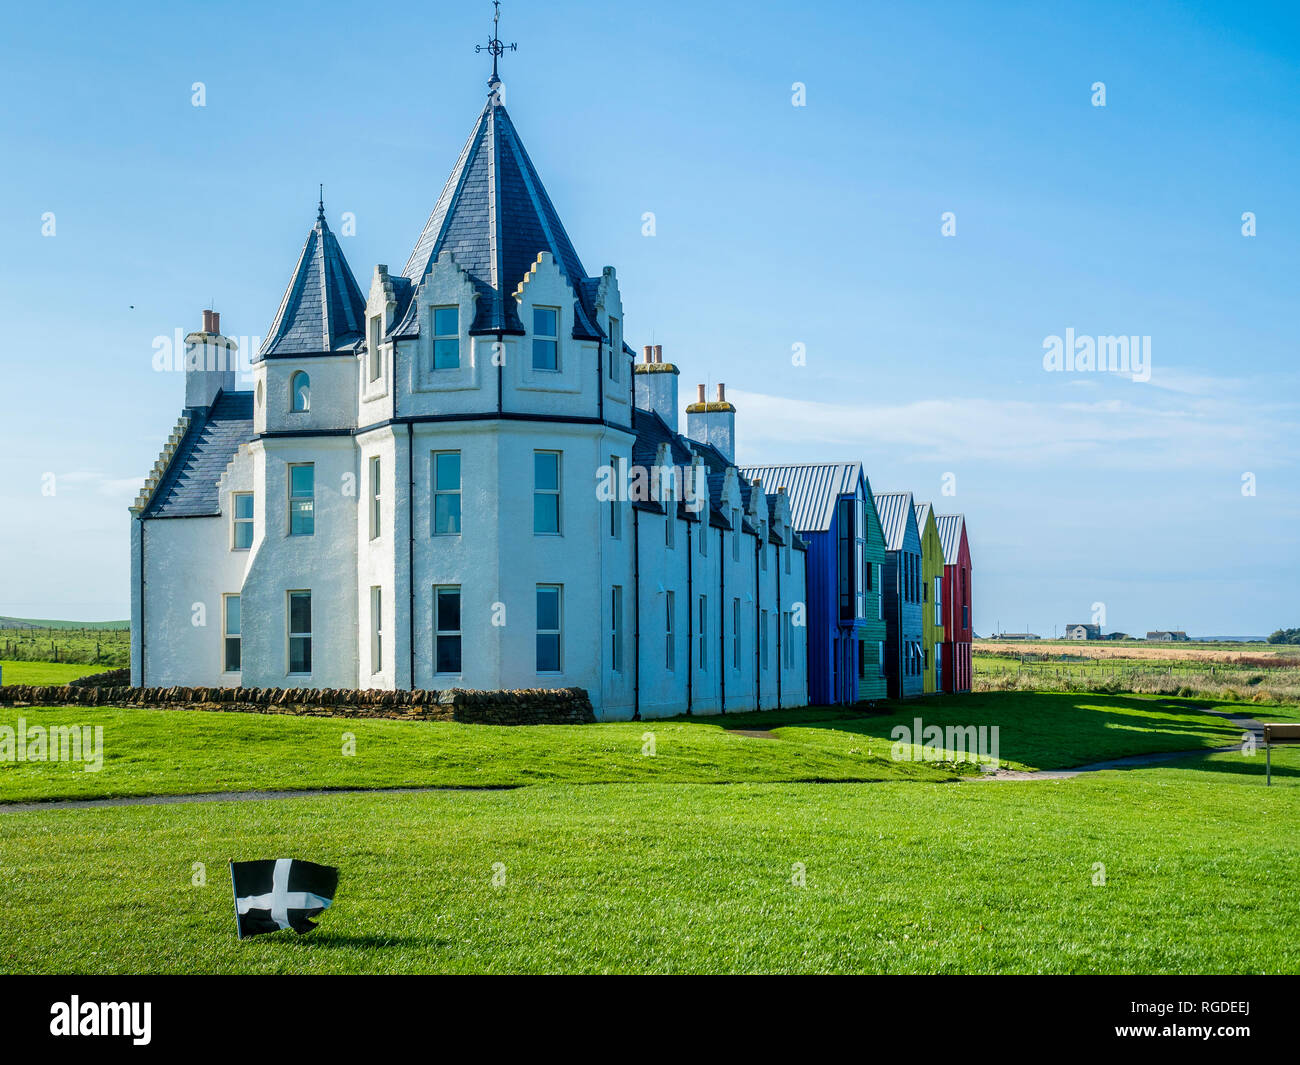 UK, Scotland, Highland, Caithness, John O'Groats, row of houses - Stock Image